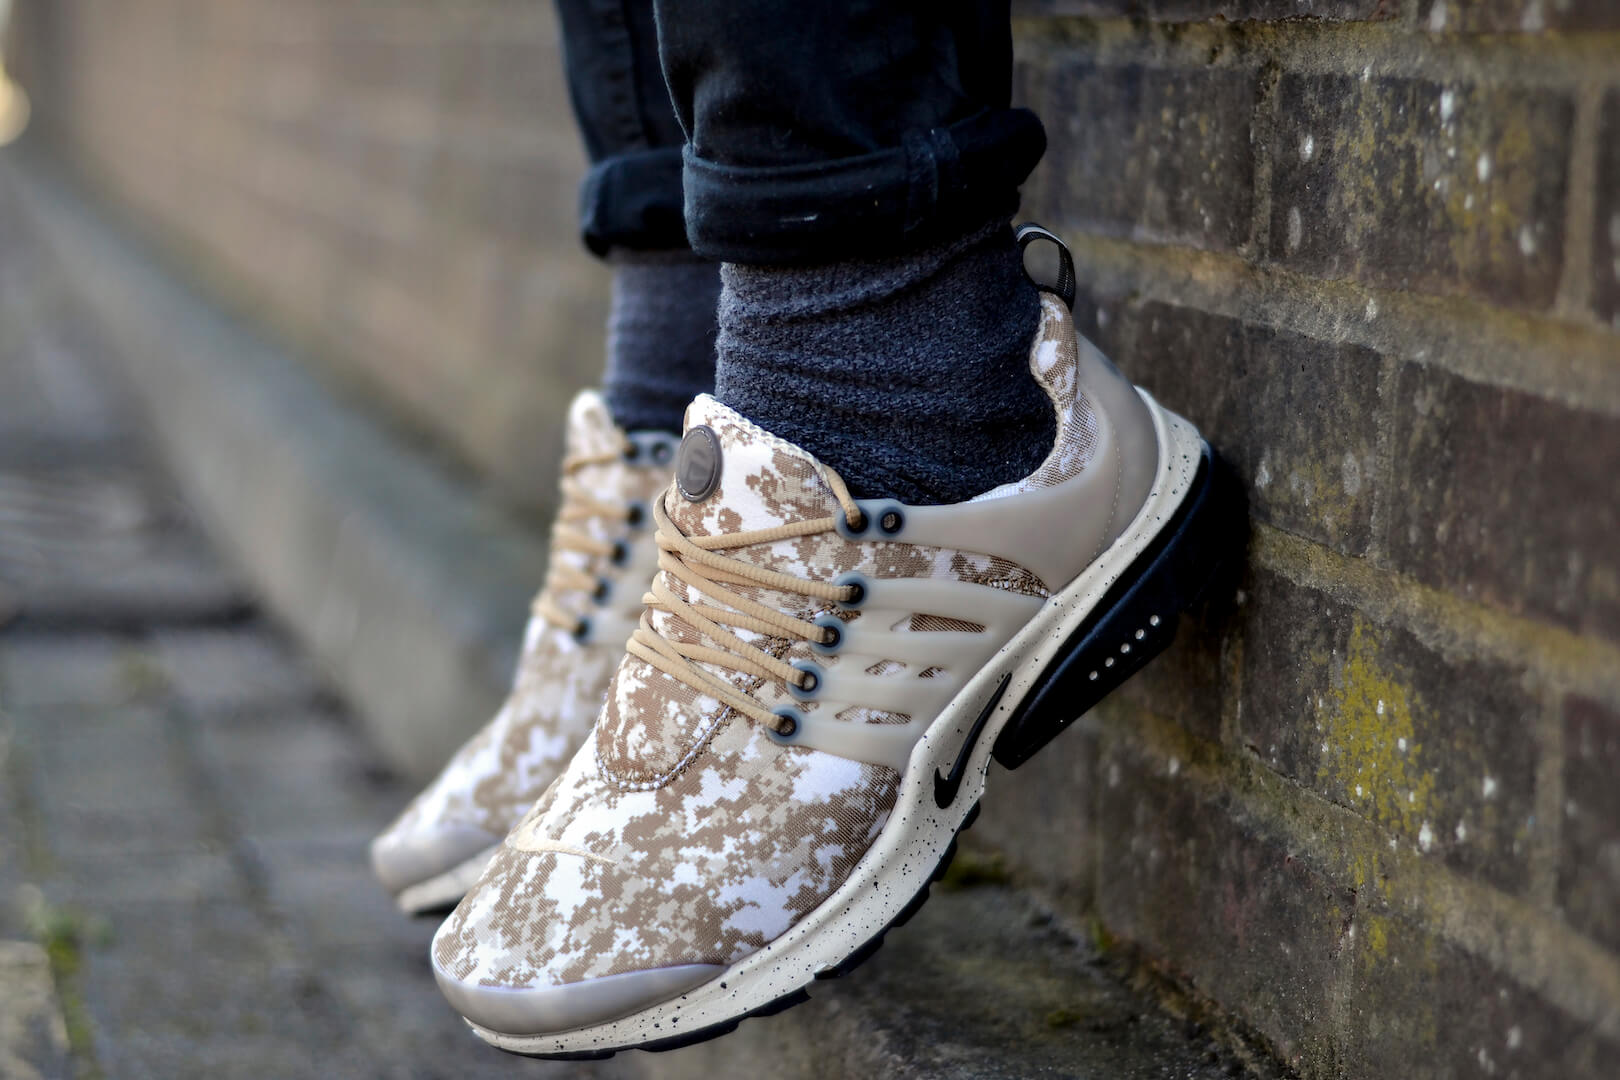 lowest price 3b578 f859c Nike Air Presto GPX 'Digi Camo // On-foot | Natterjacks Blog